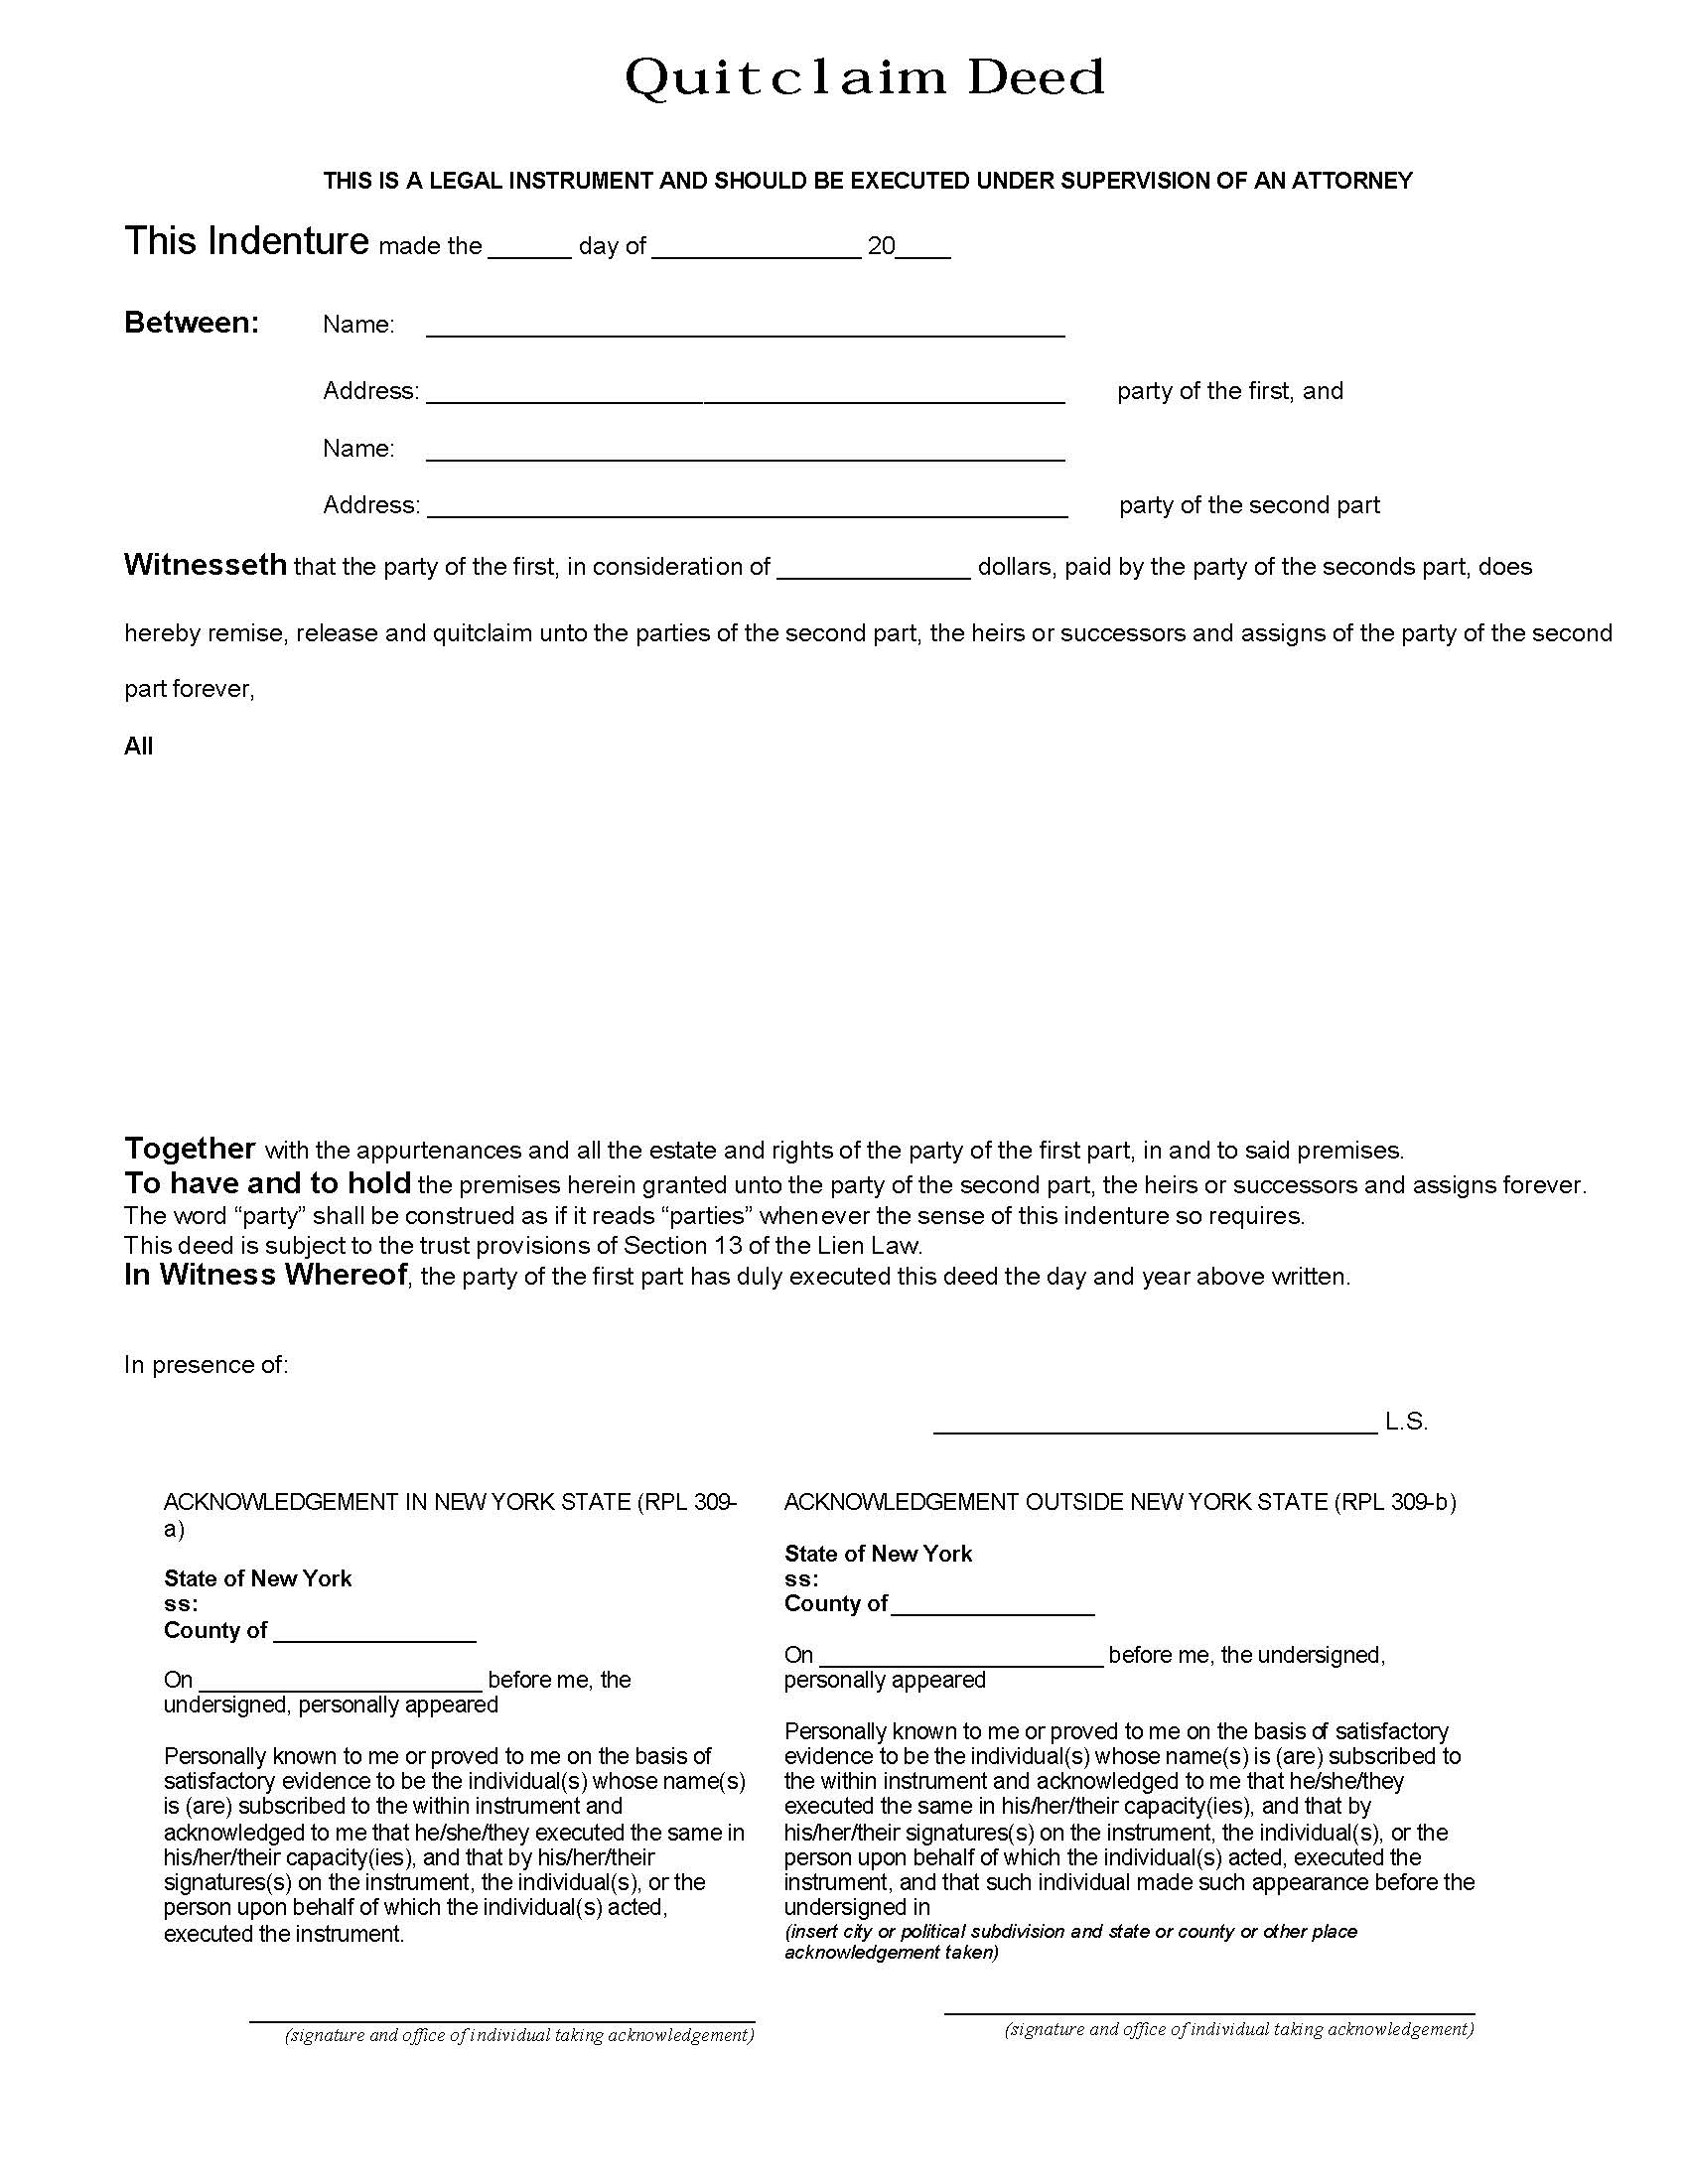 New York Quit Claim Deed Form - Deed Forms : Deed Forms